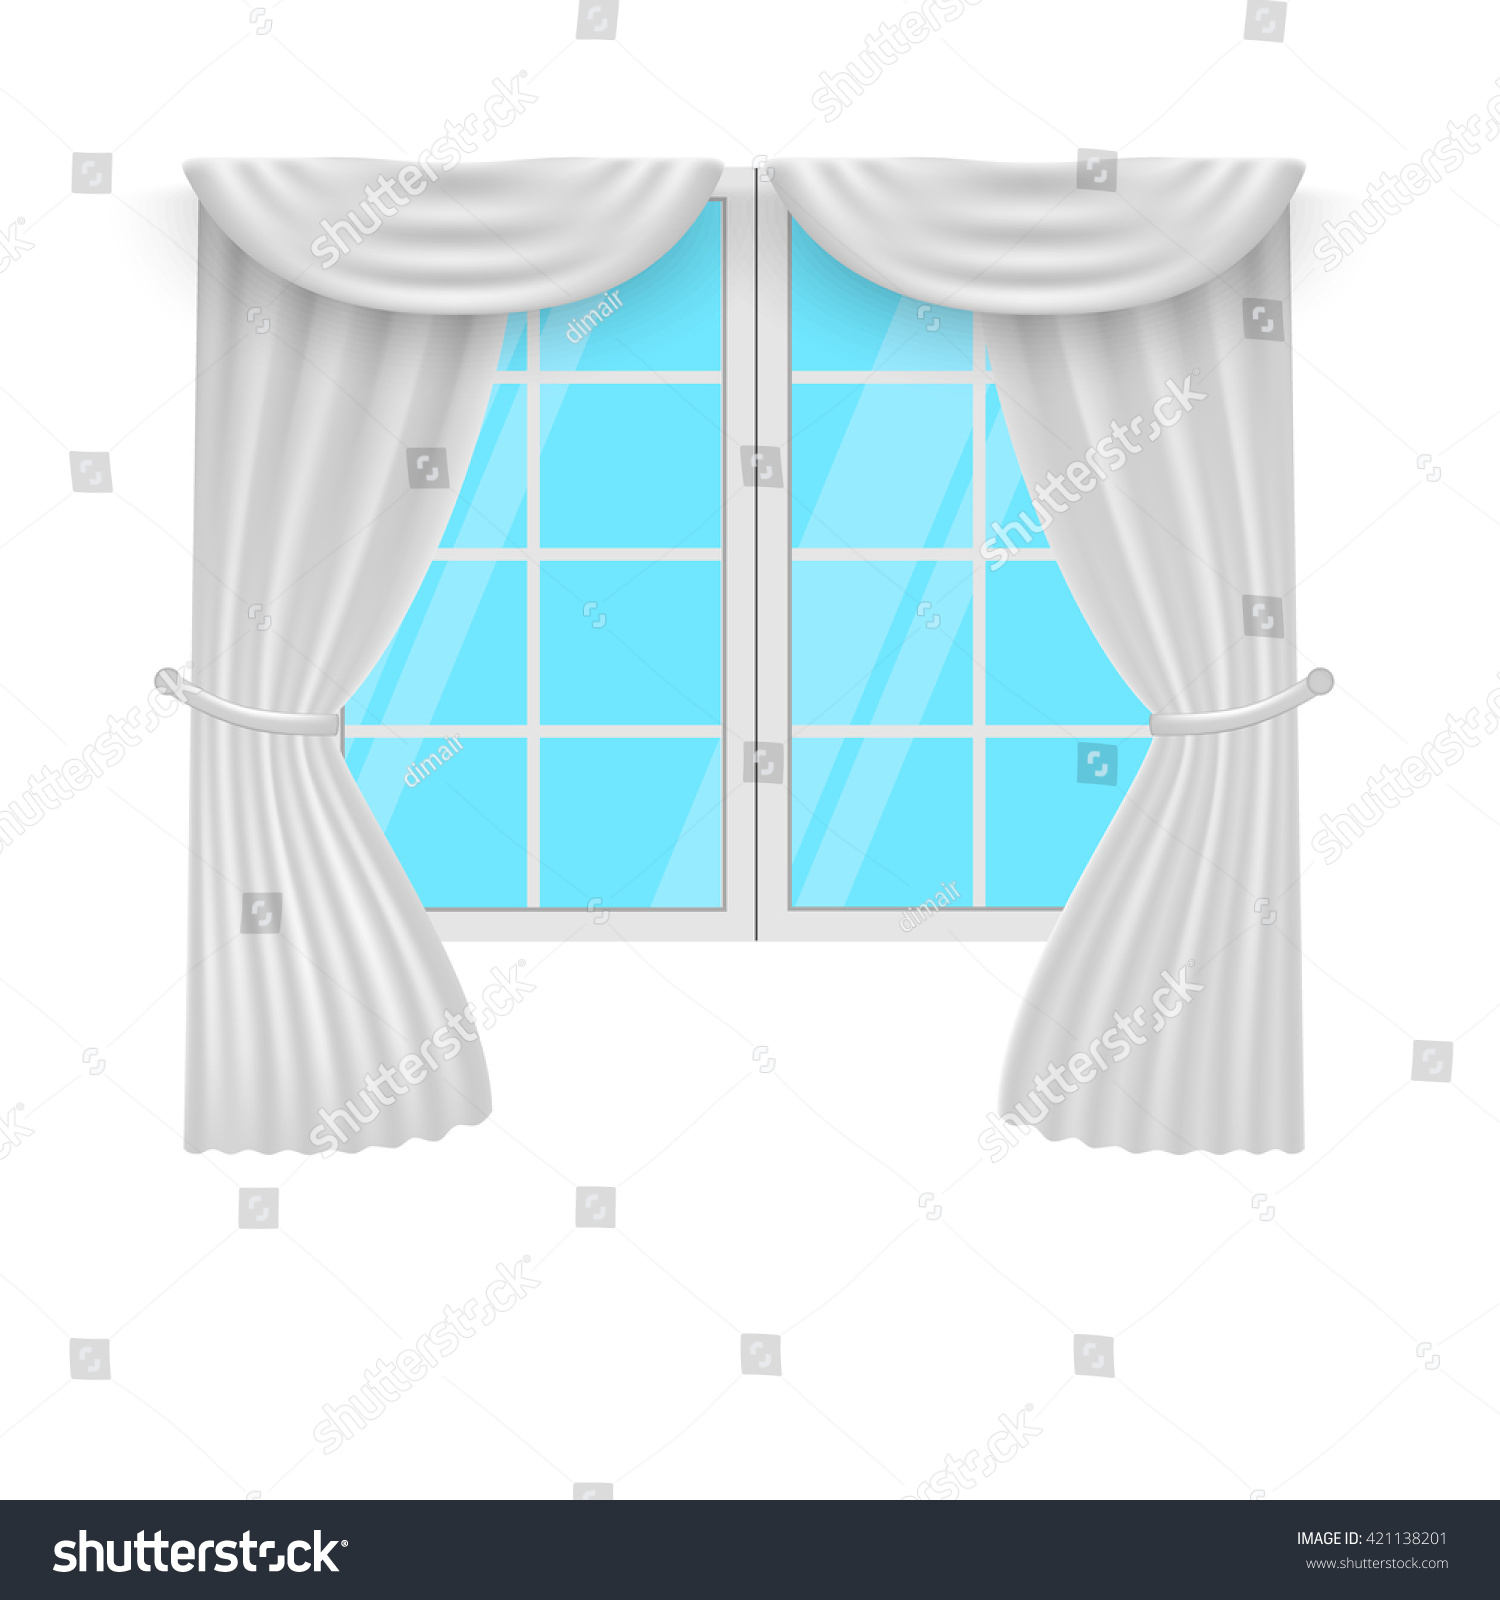 Window Curtains White Curtans Windows Vector Stock Vector ... for Window With Curtains Illustration  54lyp